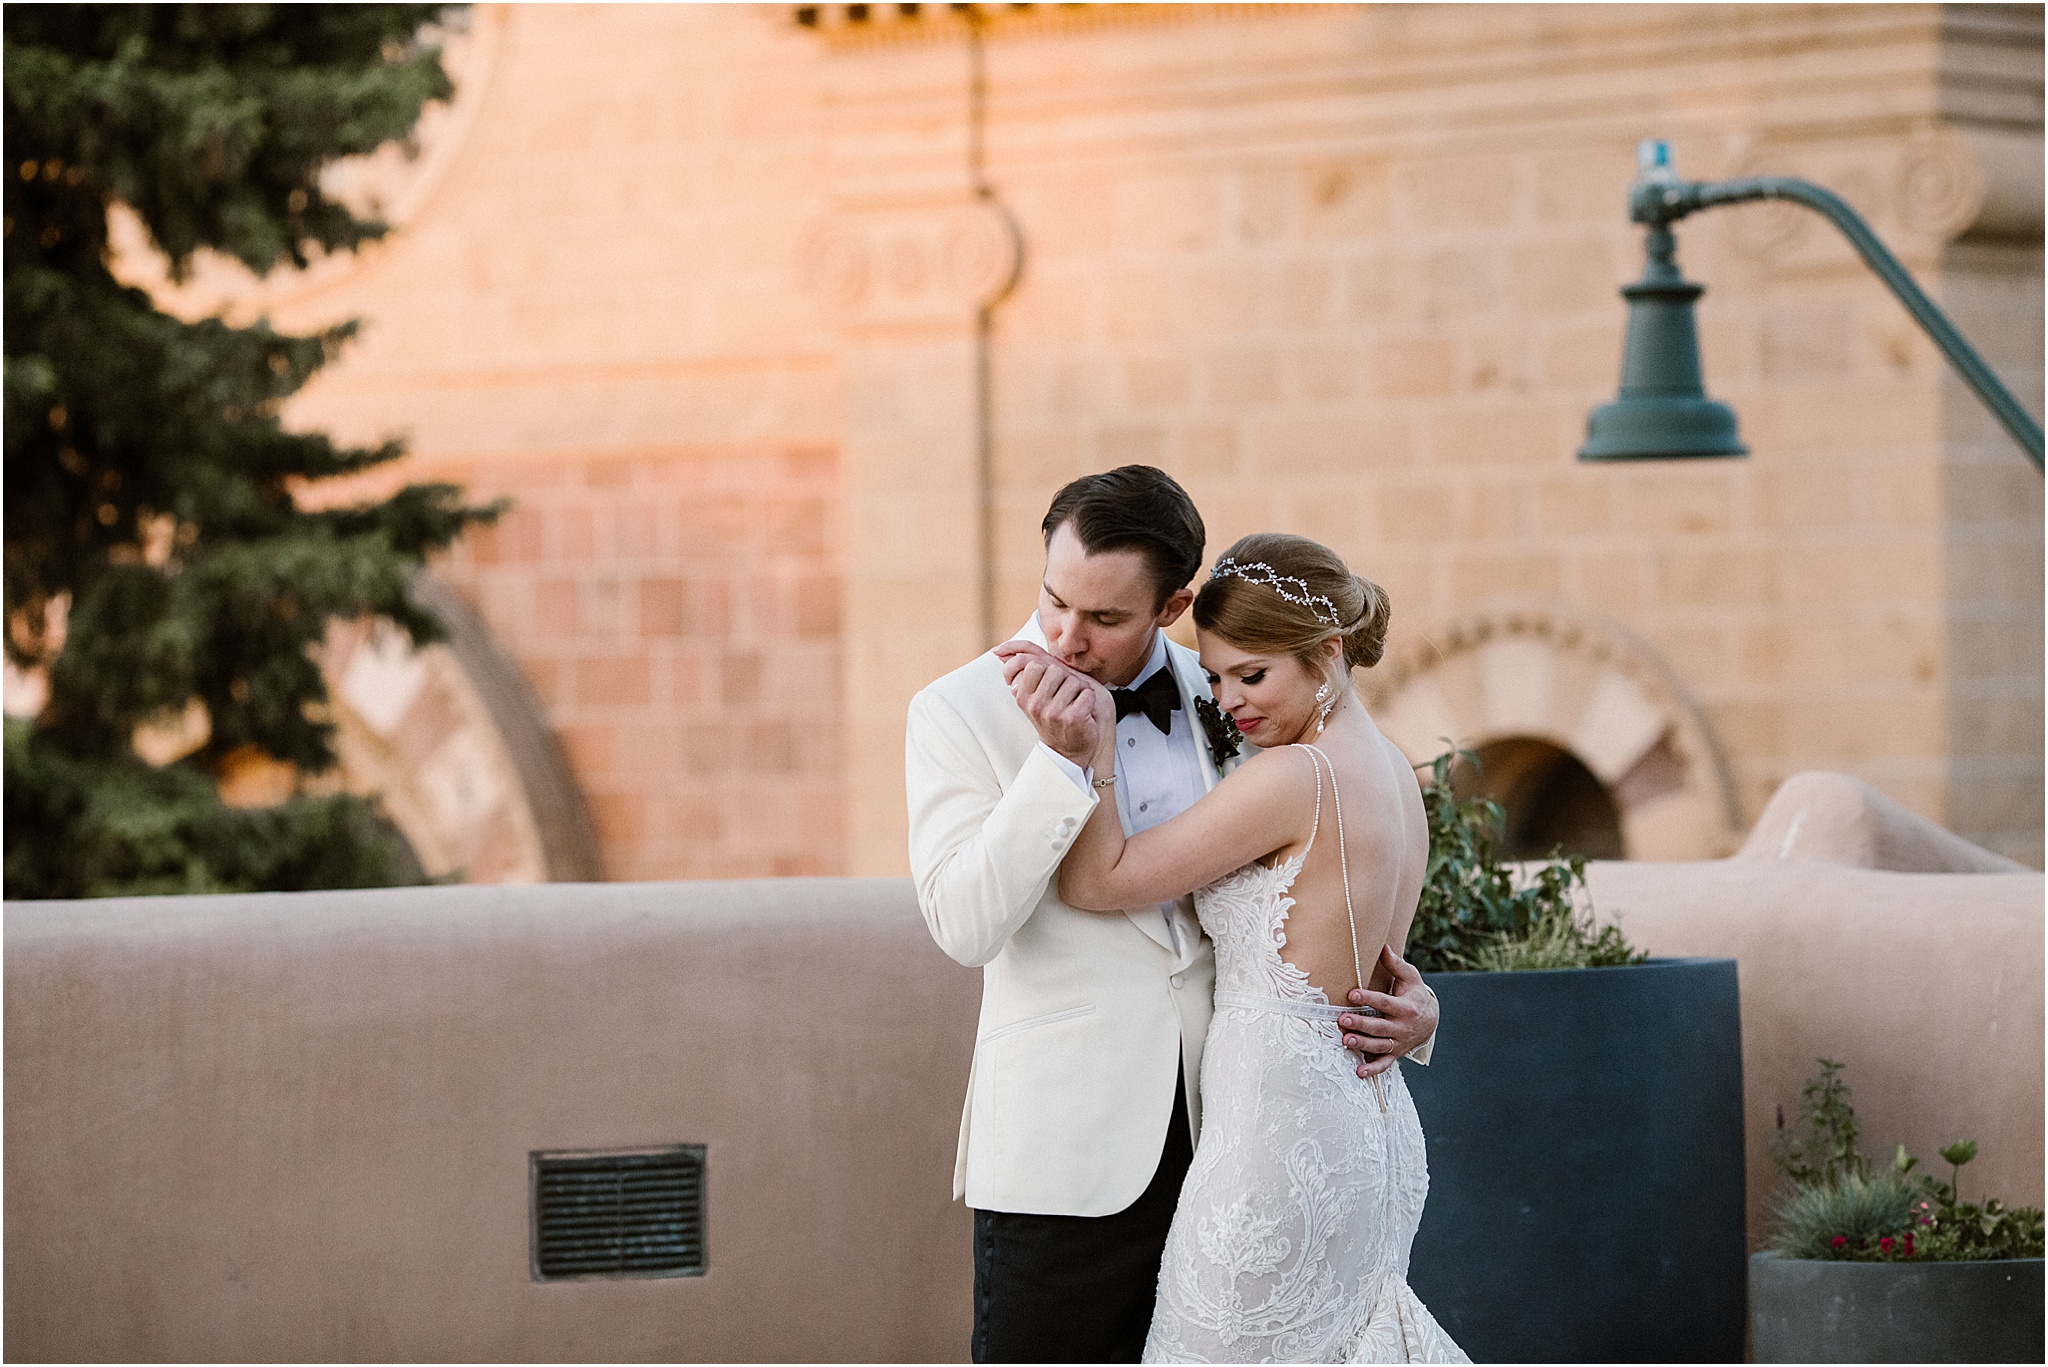 BLUE ROSE PHOTOGRAPHY SANTA FE WEDDING_54